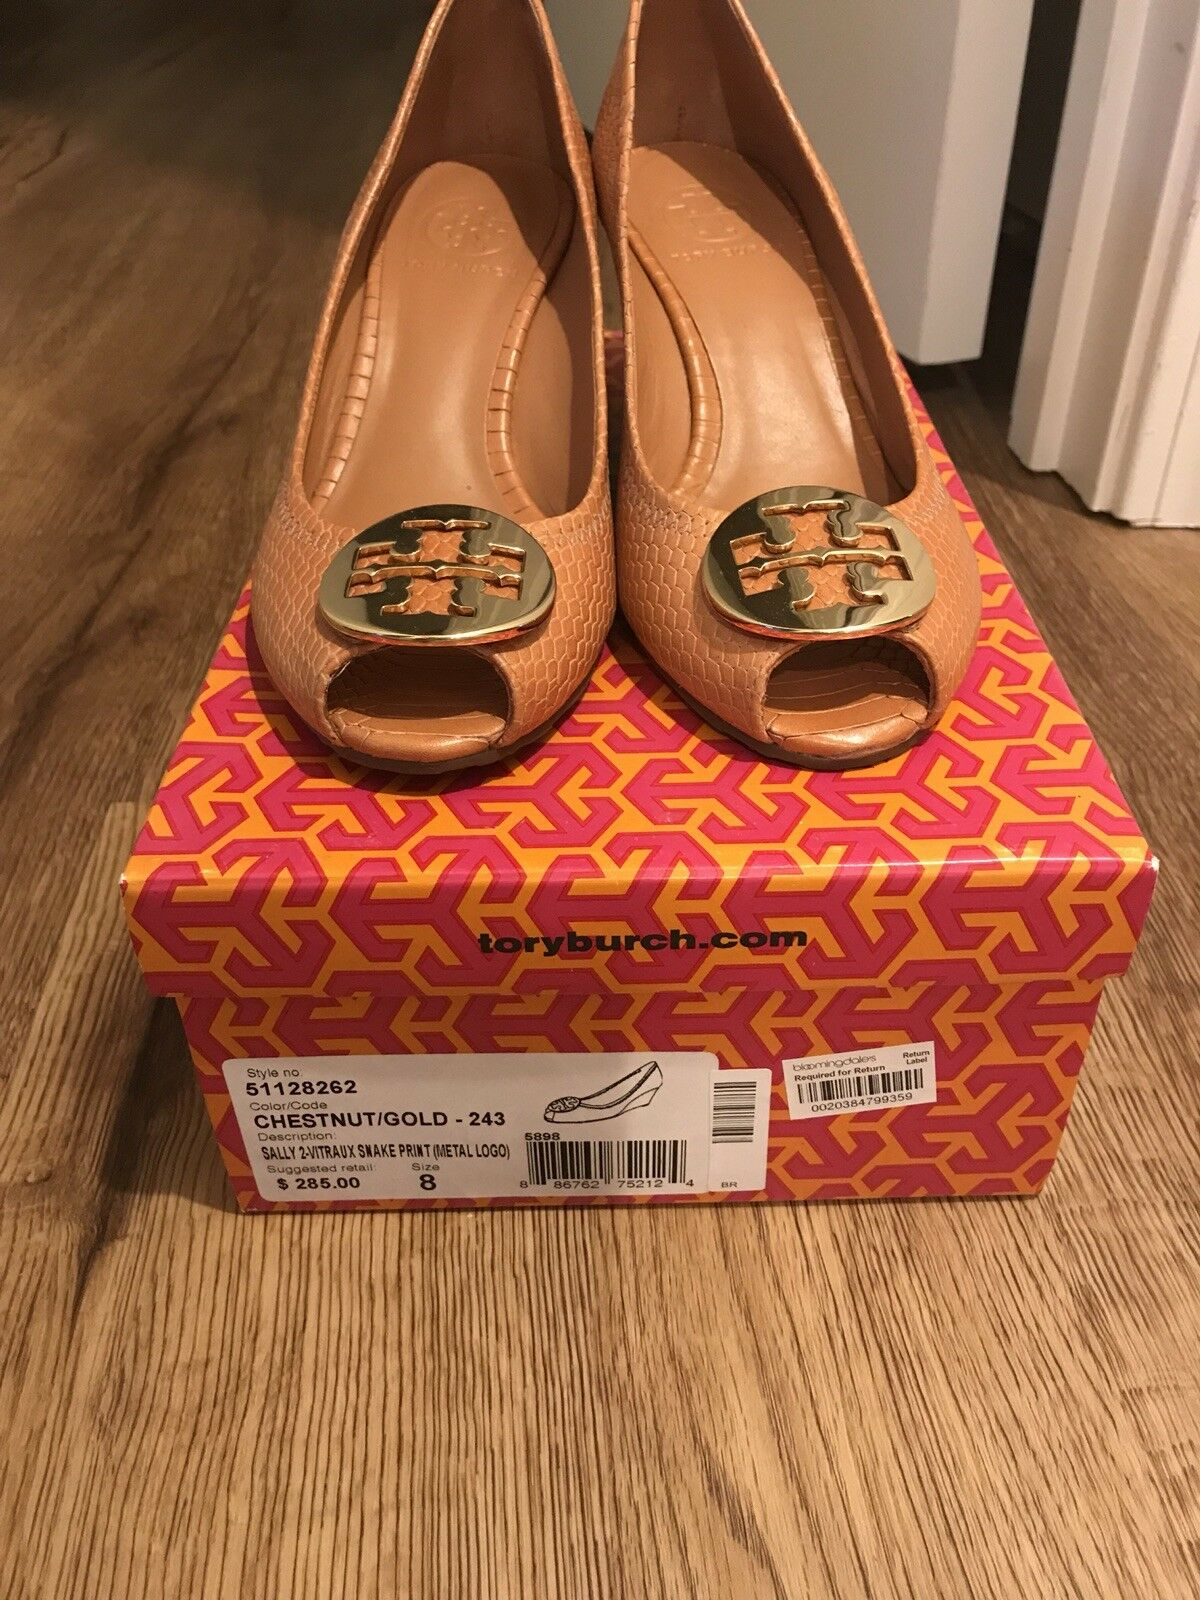 Tory Burch Wedge Peep Toe shoes